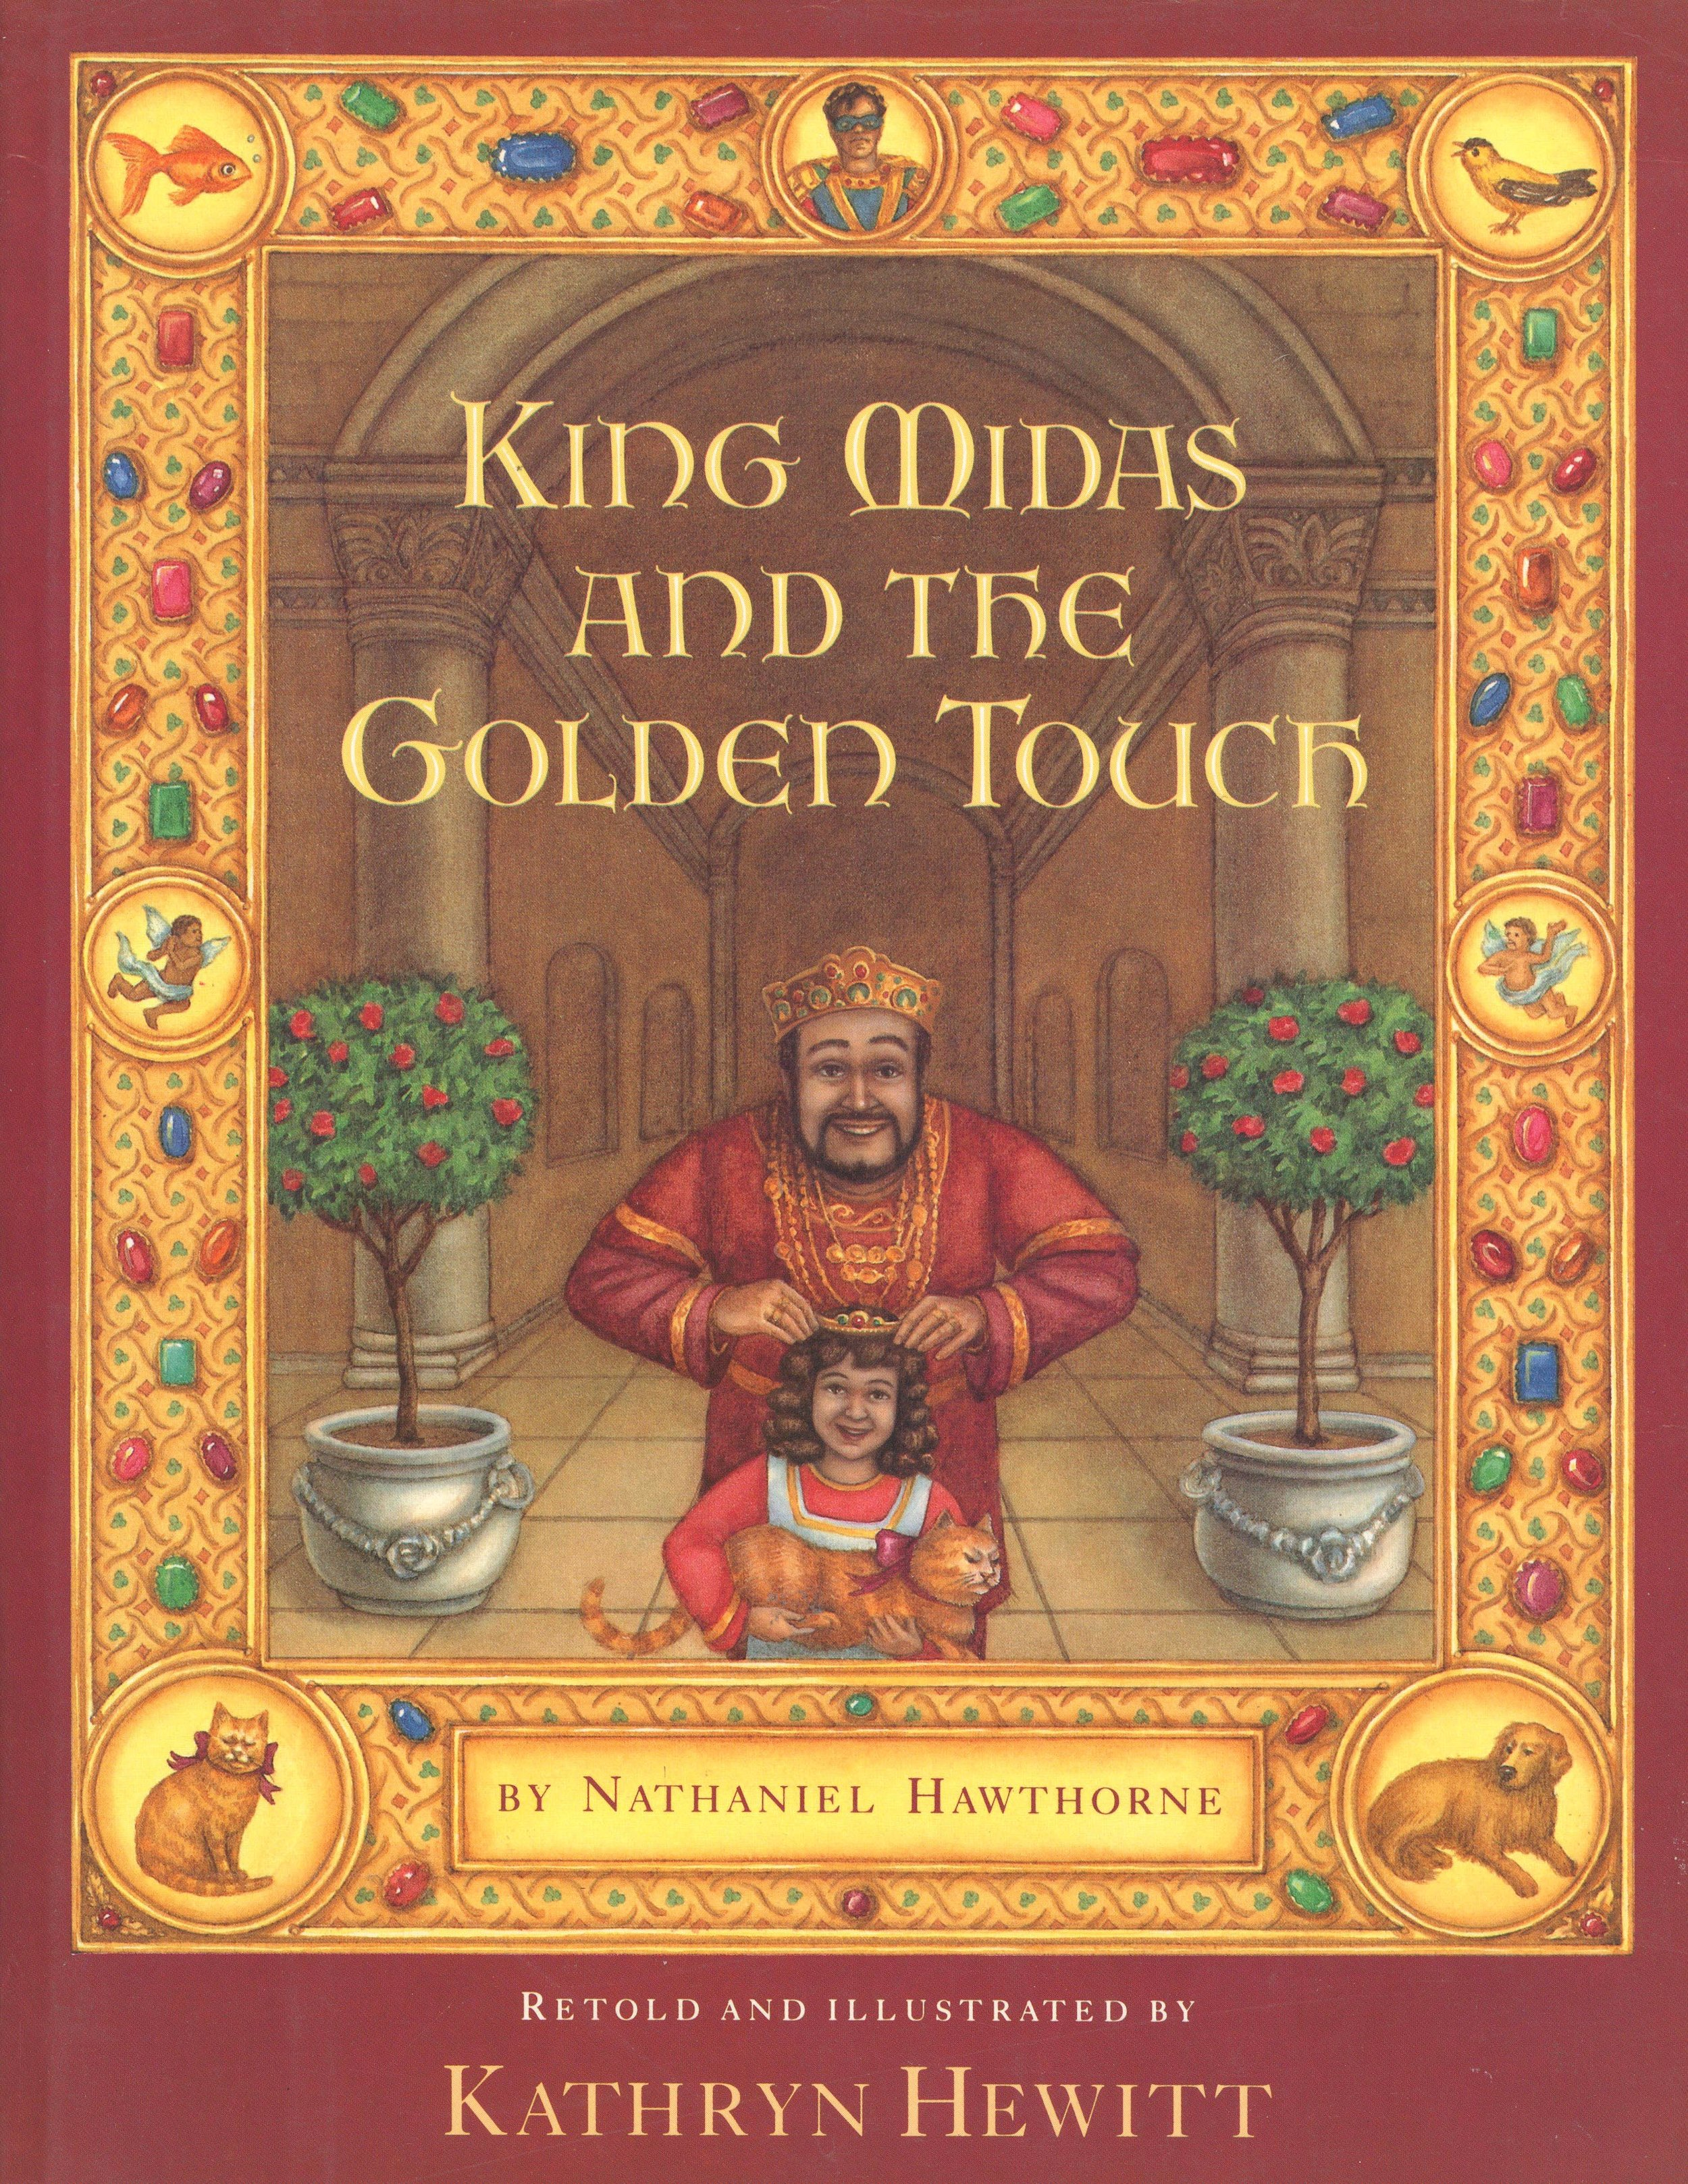 "King Midas and the Golden Touch - Retold and illustrated by Kathryn HewittHarcourt 1987An amusing rendition of the Hawthorne tale about King Midas and his daughter Marigold. ""Hewitt's artwork shines with a golden touch of its own.""  --Booklist"